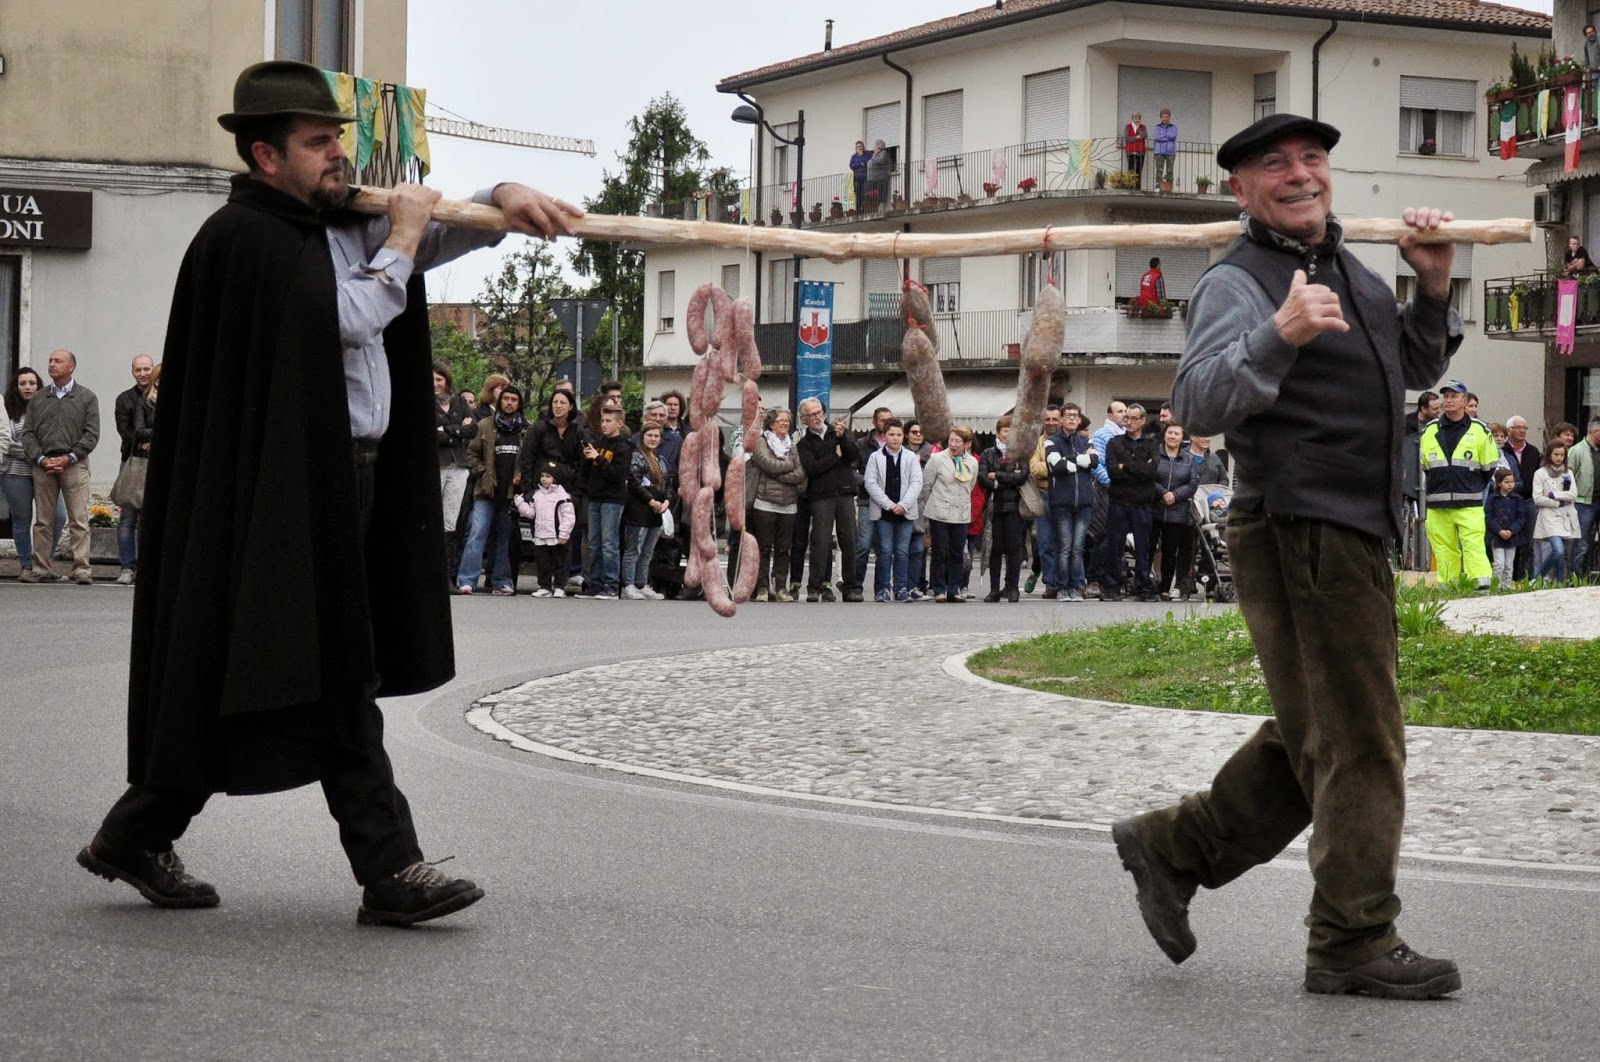 The sasauge bearers at the Parade, Donkey Race, Romano d'Ezzelino, Veneto, Italy